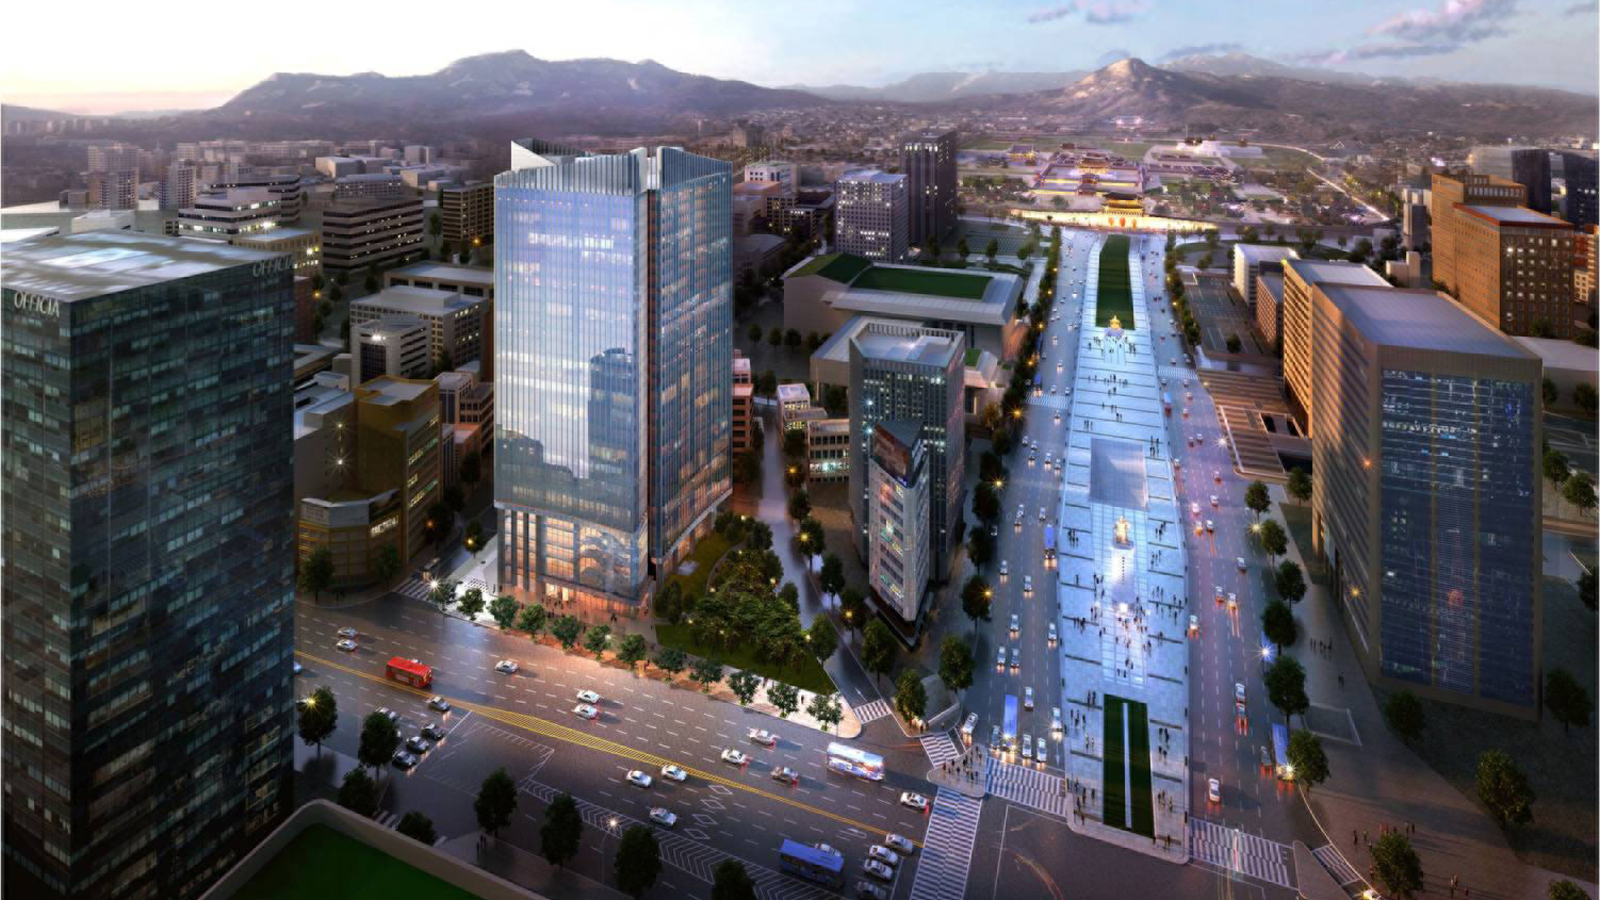 In Seoul The First Four Seasons Hotel 317 Rooms South Korea Will Open